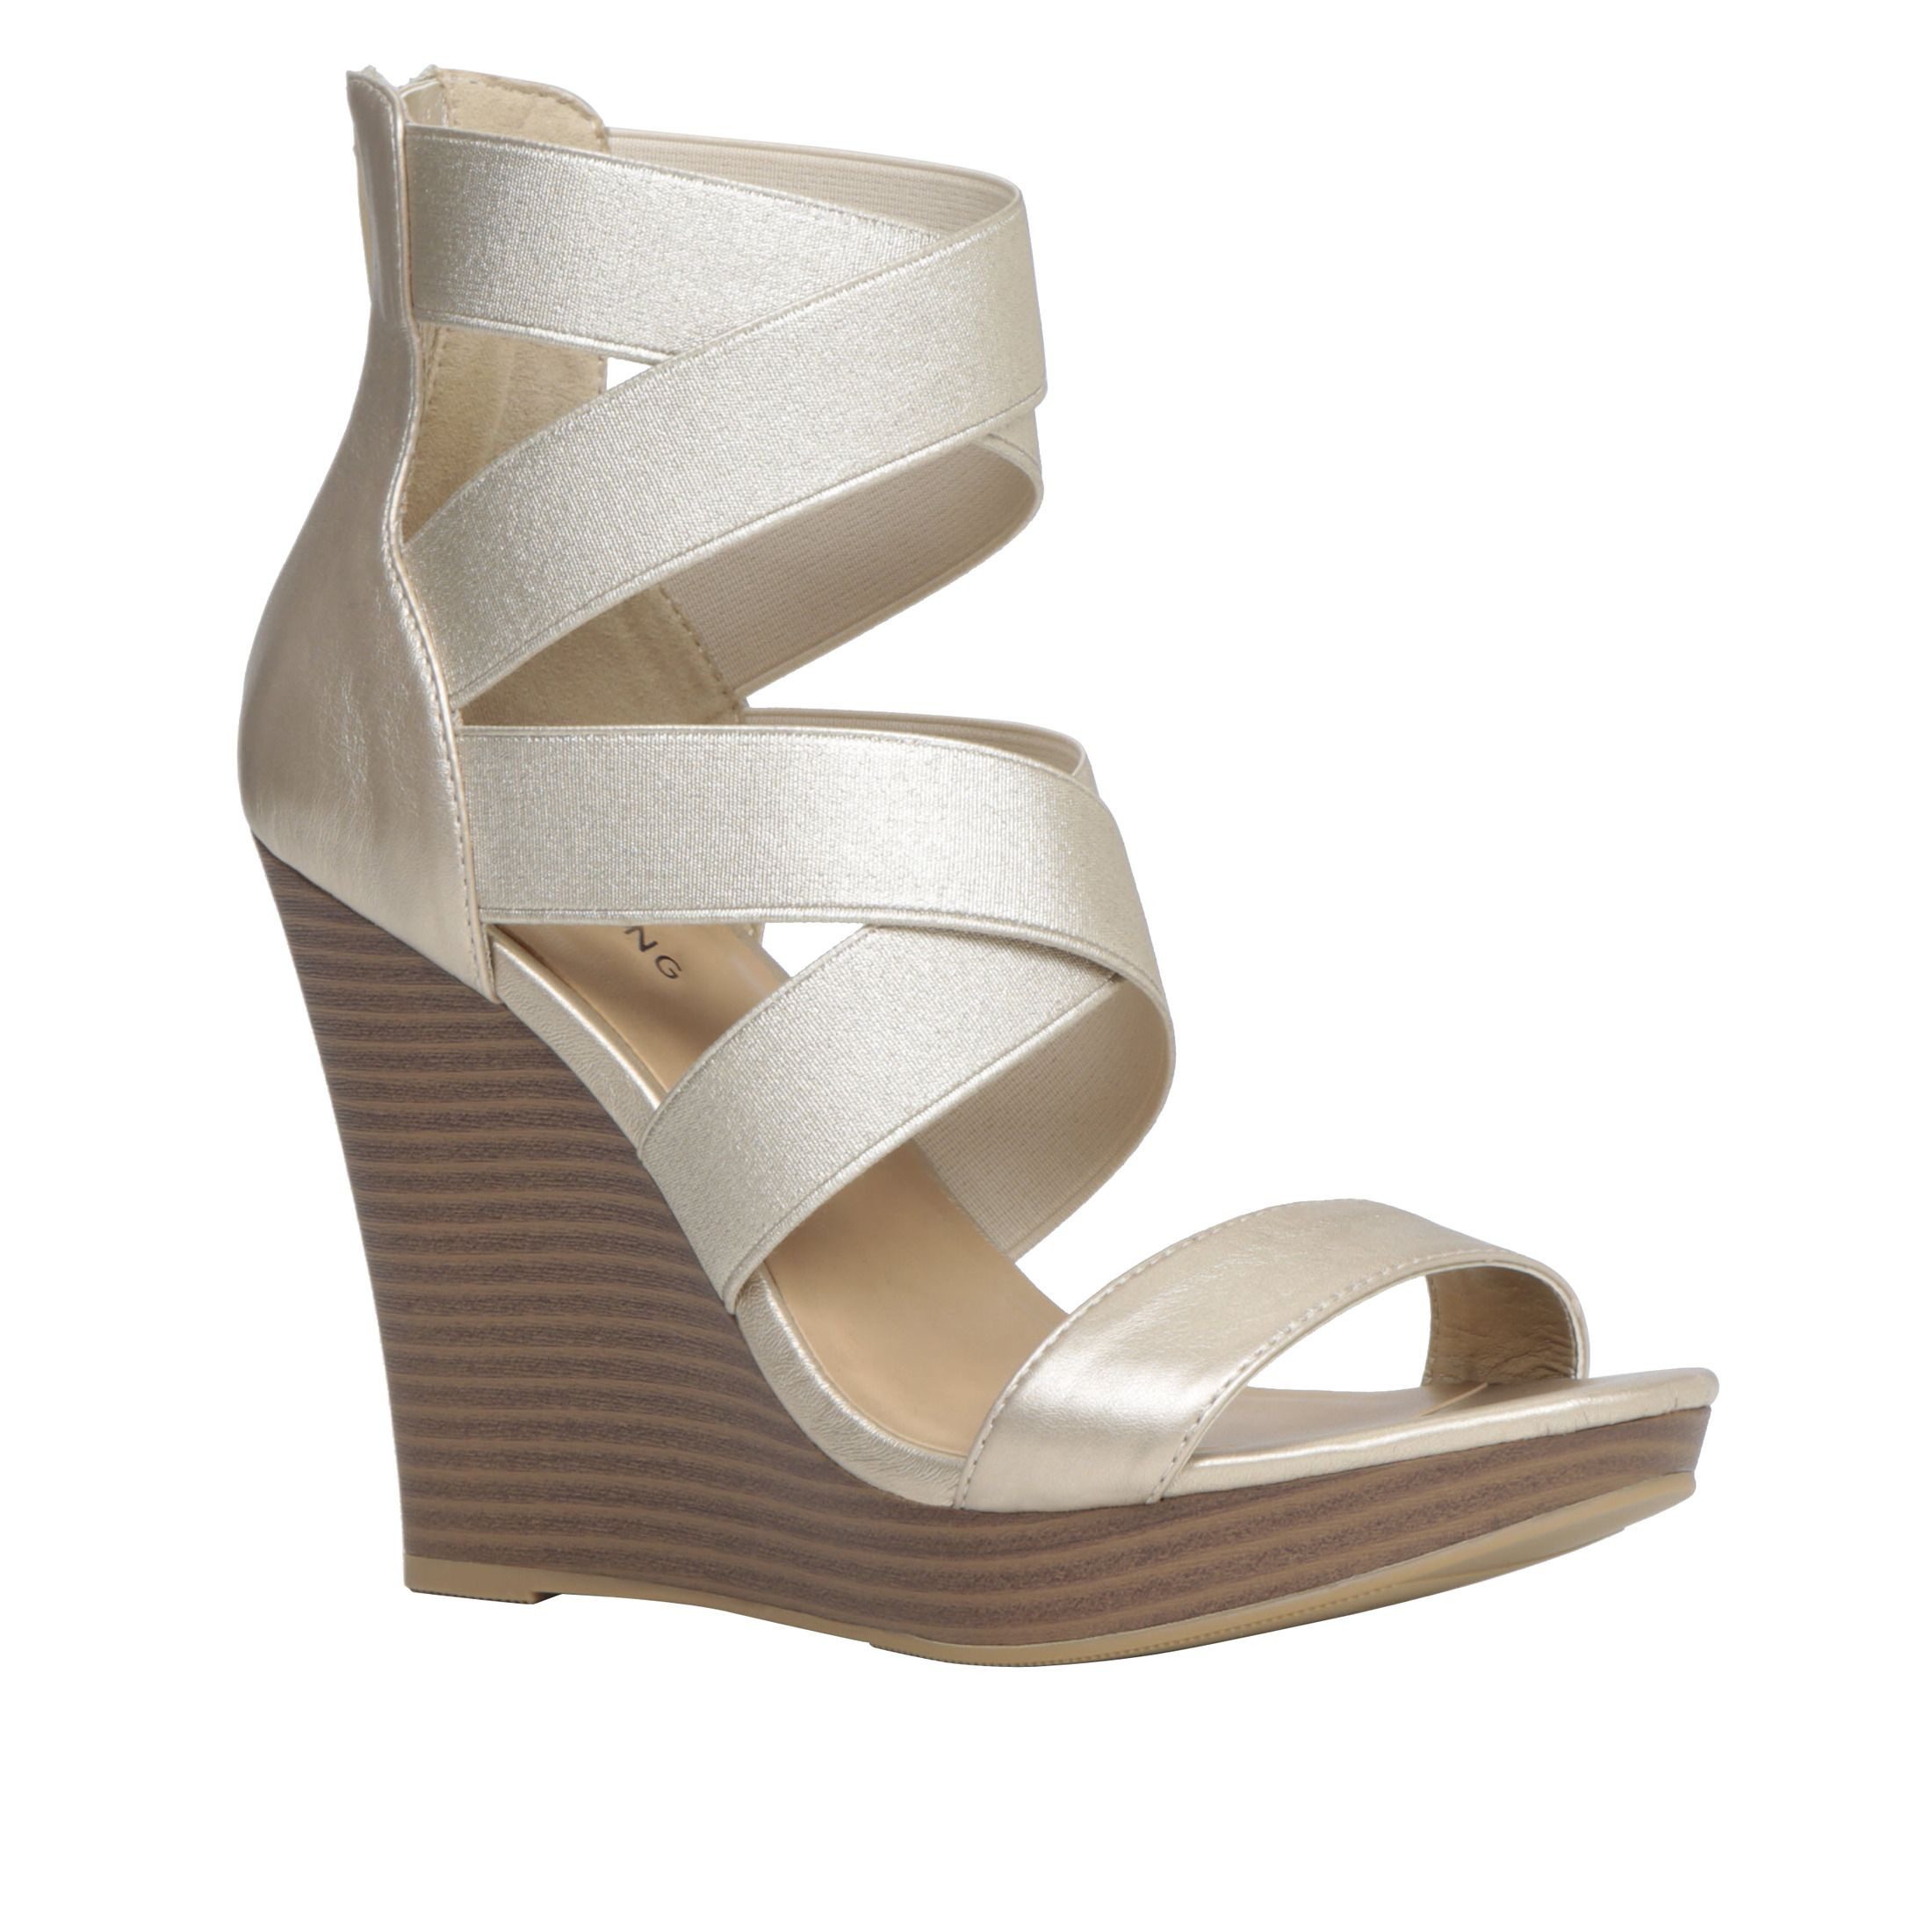 Womens sandals wedges - Buy Zeisa Women S Sandals Wedges At Call It Spring Free Shipping